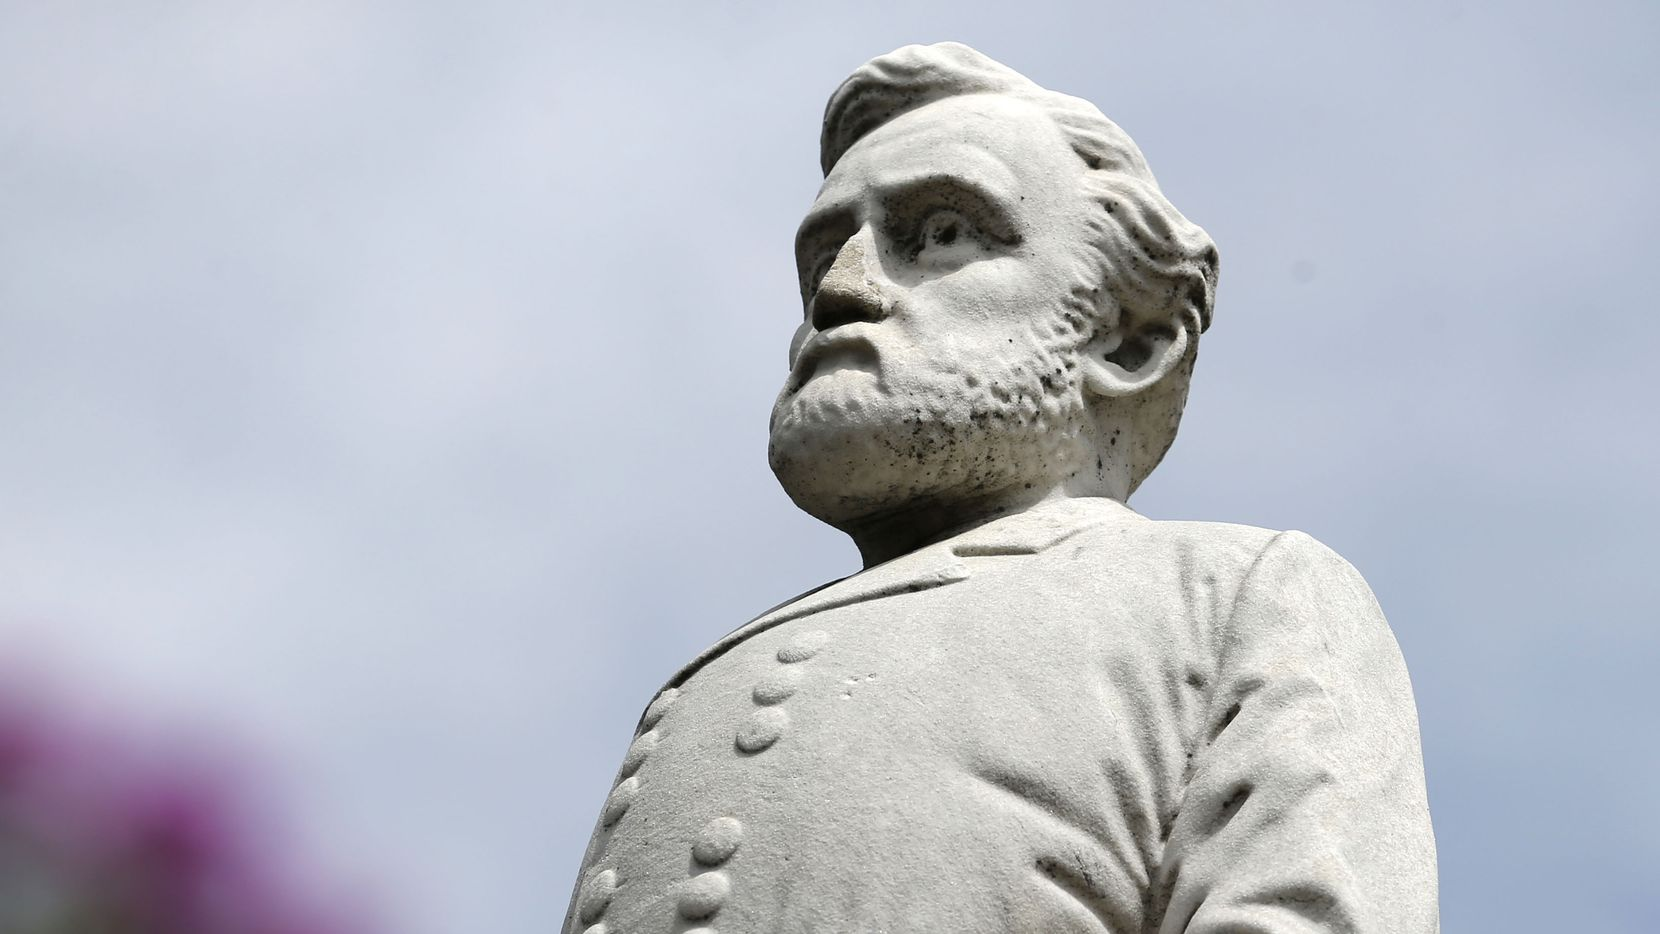 A statue of Gen. Robert E. Lee stands at the Confederate War Memorial in Dallas. Following the swift removal of another Lee statue and his name from an Oak Lawn park in September, the city is taking its time on 13 more recommendations from a task force on the issue of the city's Confederate monuments.